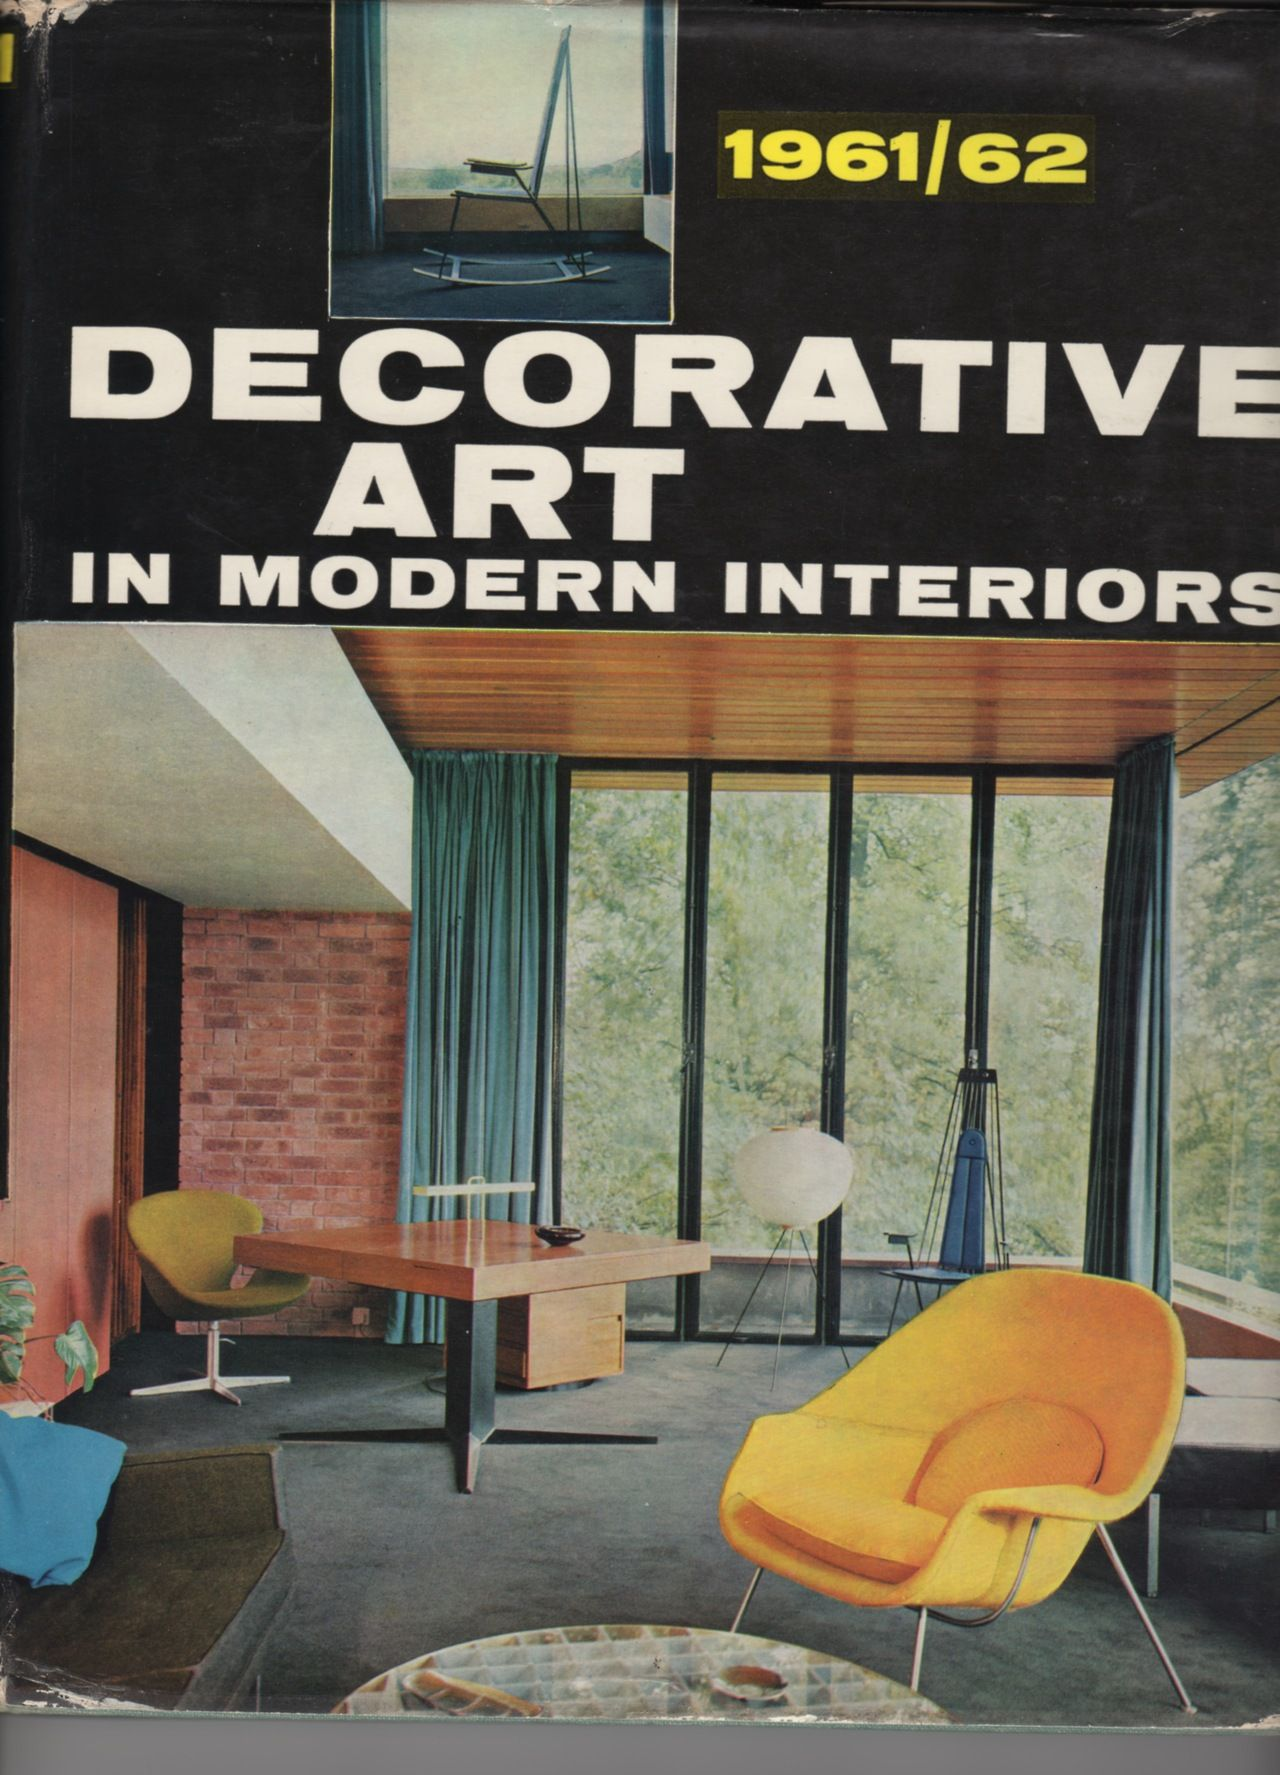 Decorative Art In Modern Interiors (1961/62) By Ella Moody. Studio Vista,  1961.